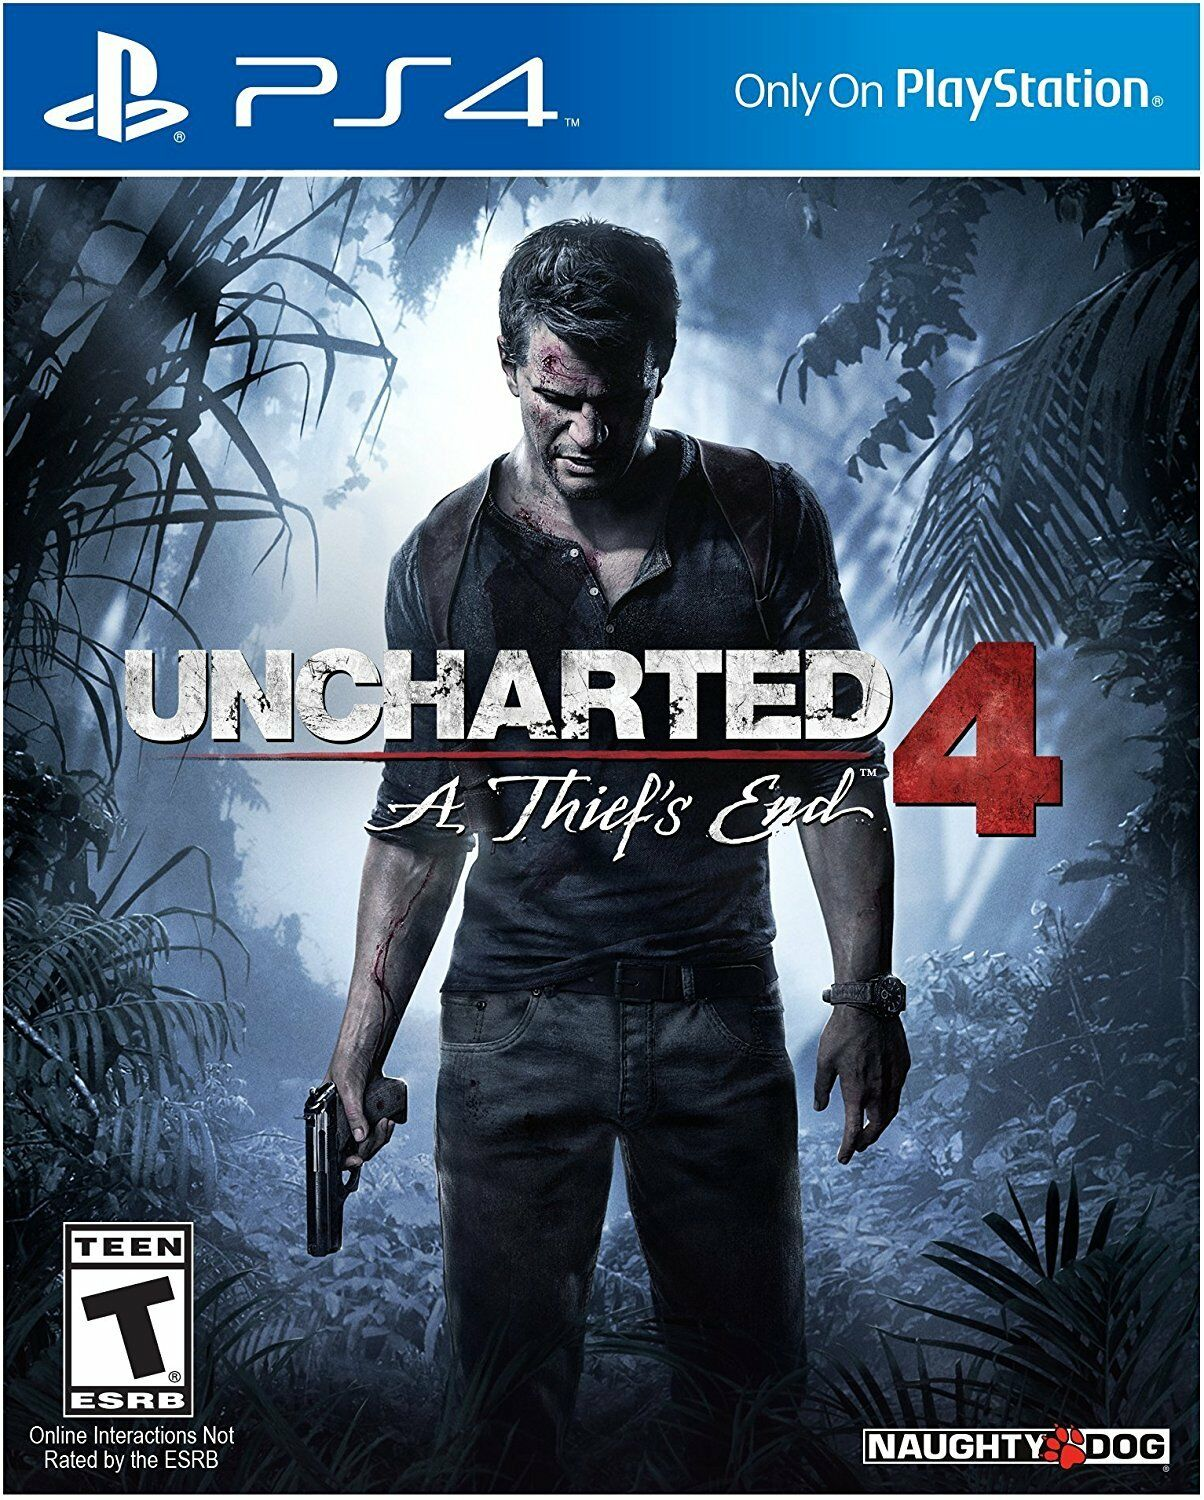 $29.99 - Uncharted 4 PS4: A Thief's End - Sony PlayStation 4 BRAND NEW SEALED